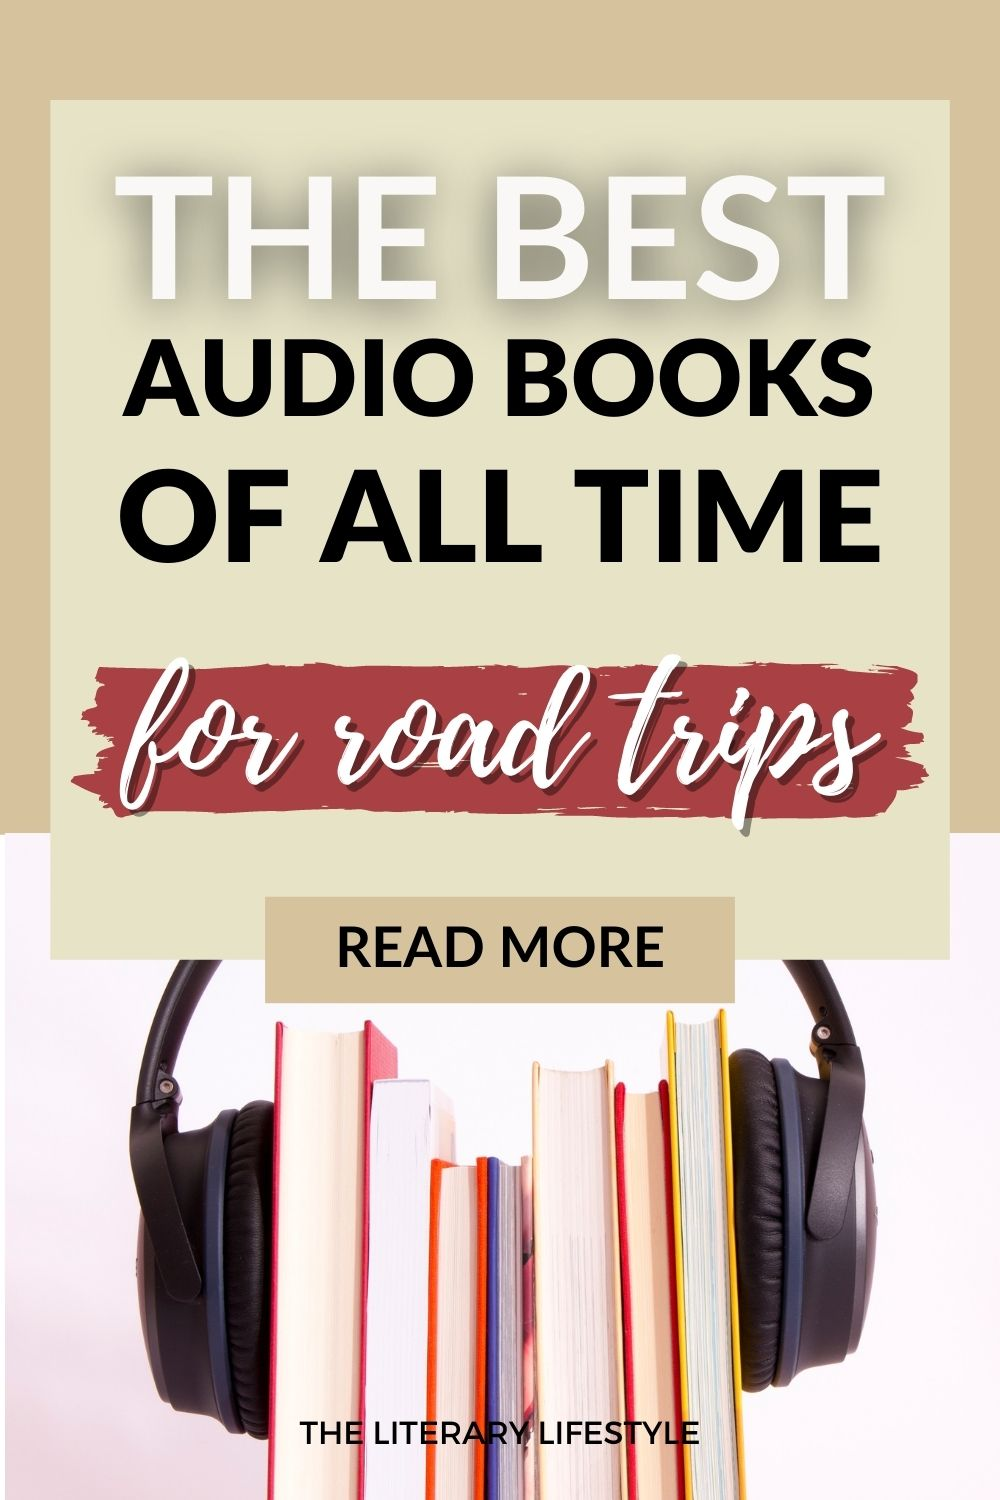 Best Audio Books of All Time for Road Trips